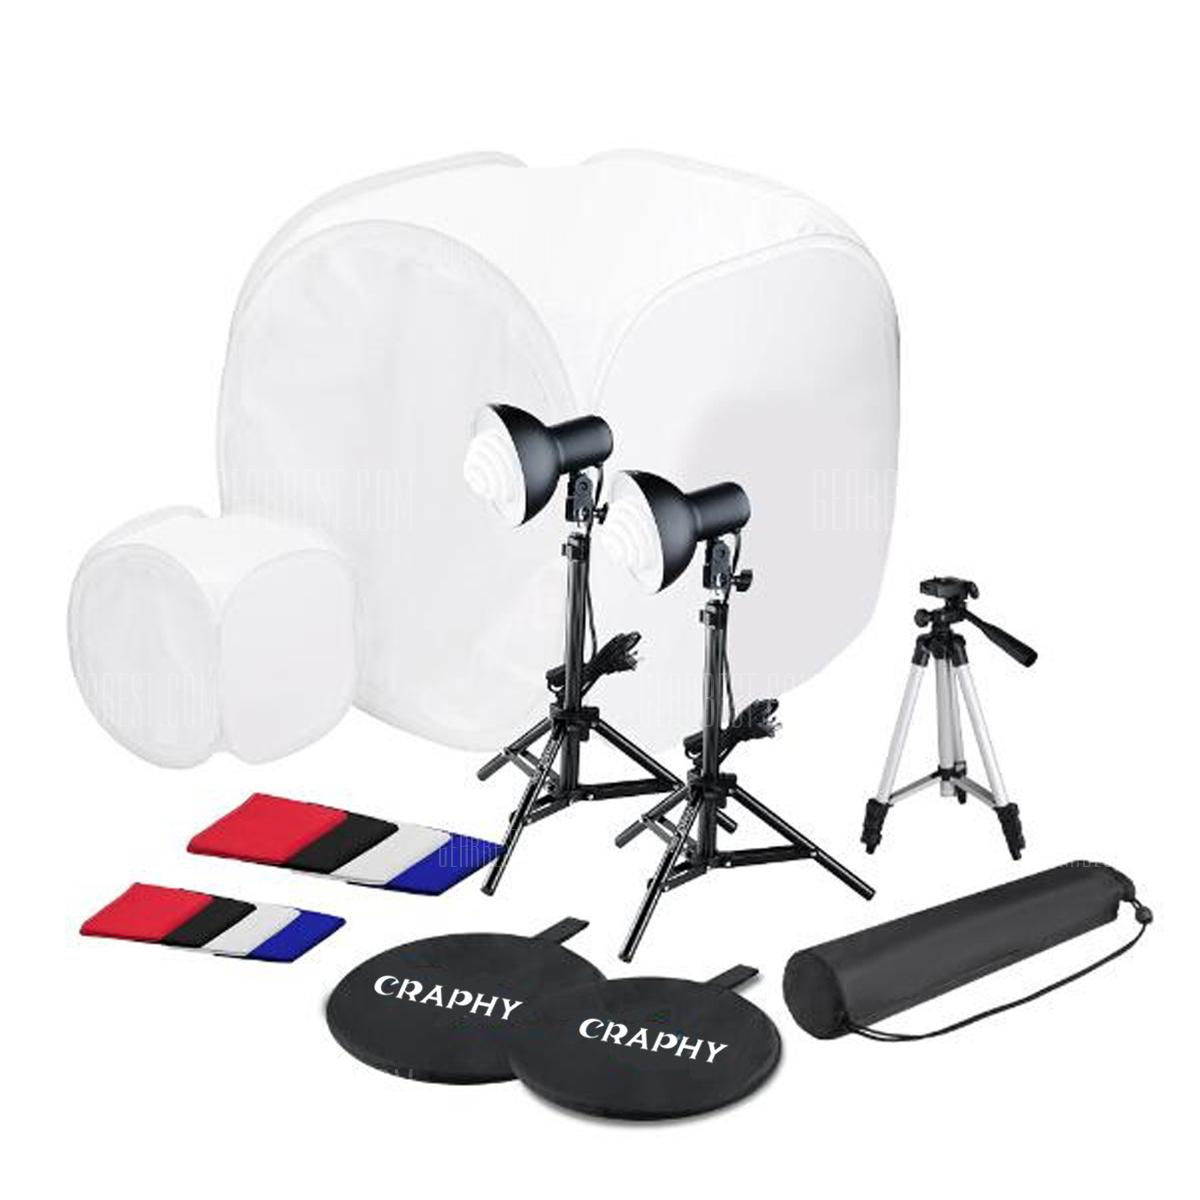 Craphy SHLP - 045 SL - 001 Photo Studio LED Flash Argiztapena Kit - BLACK